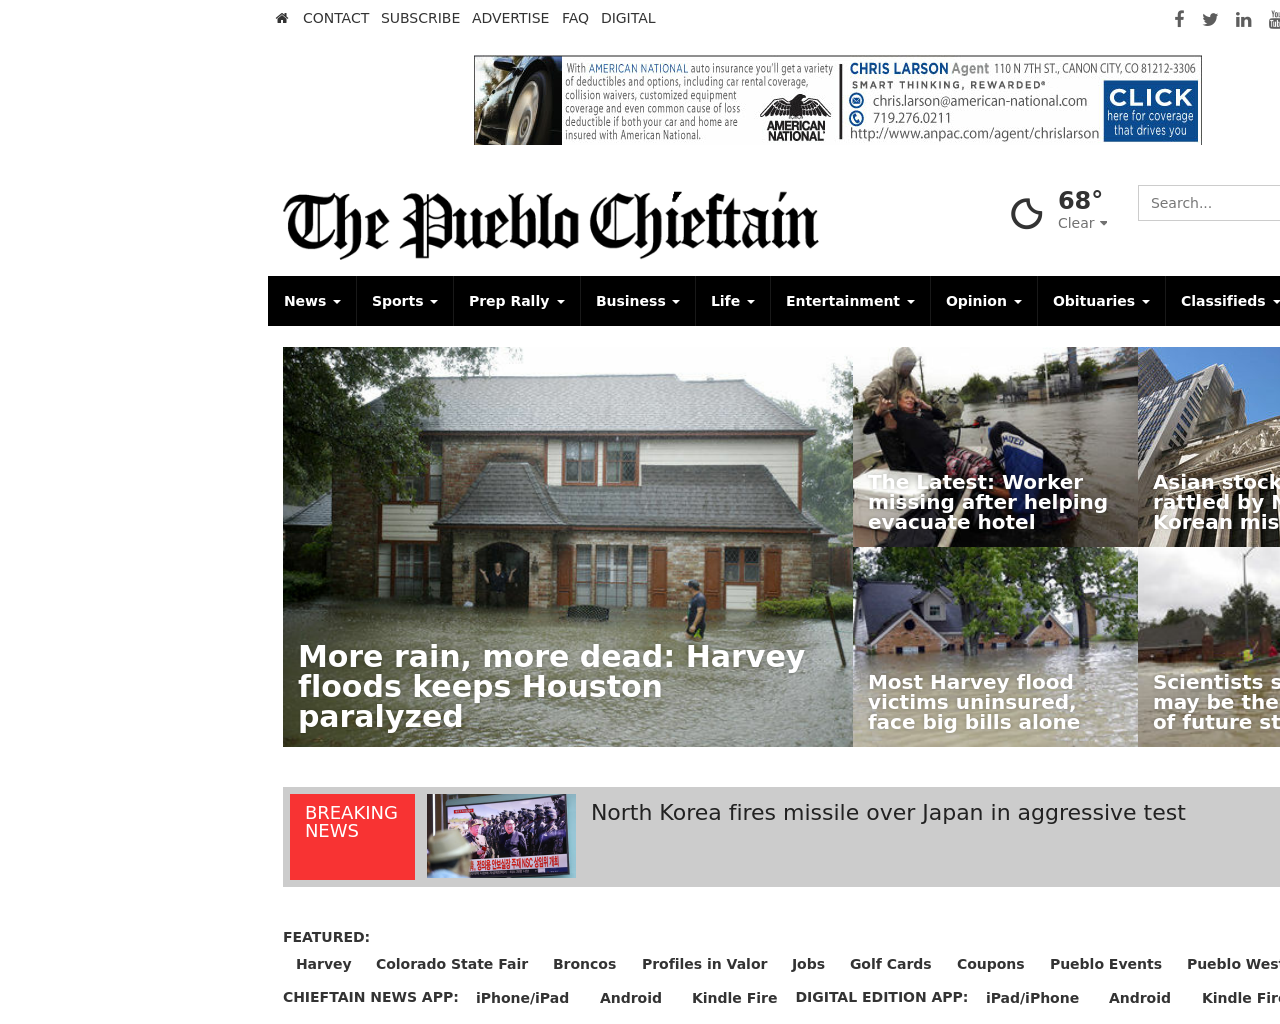 The-Pueblo-Chieftain-Advertising-Reviews-Pricing